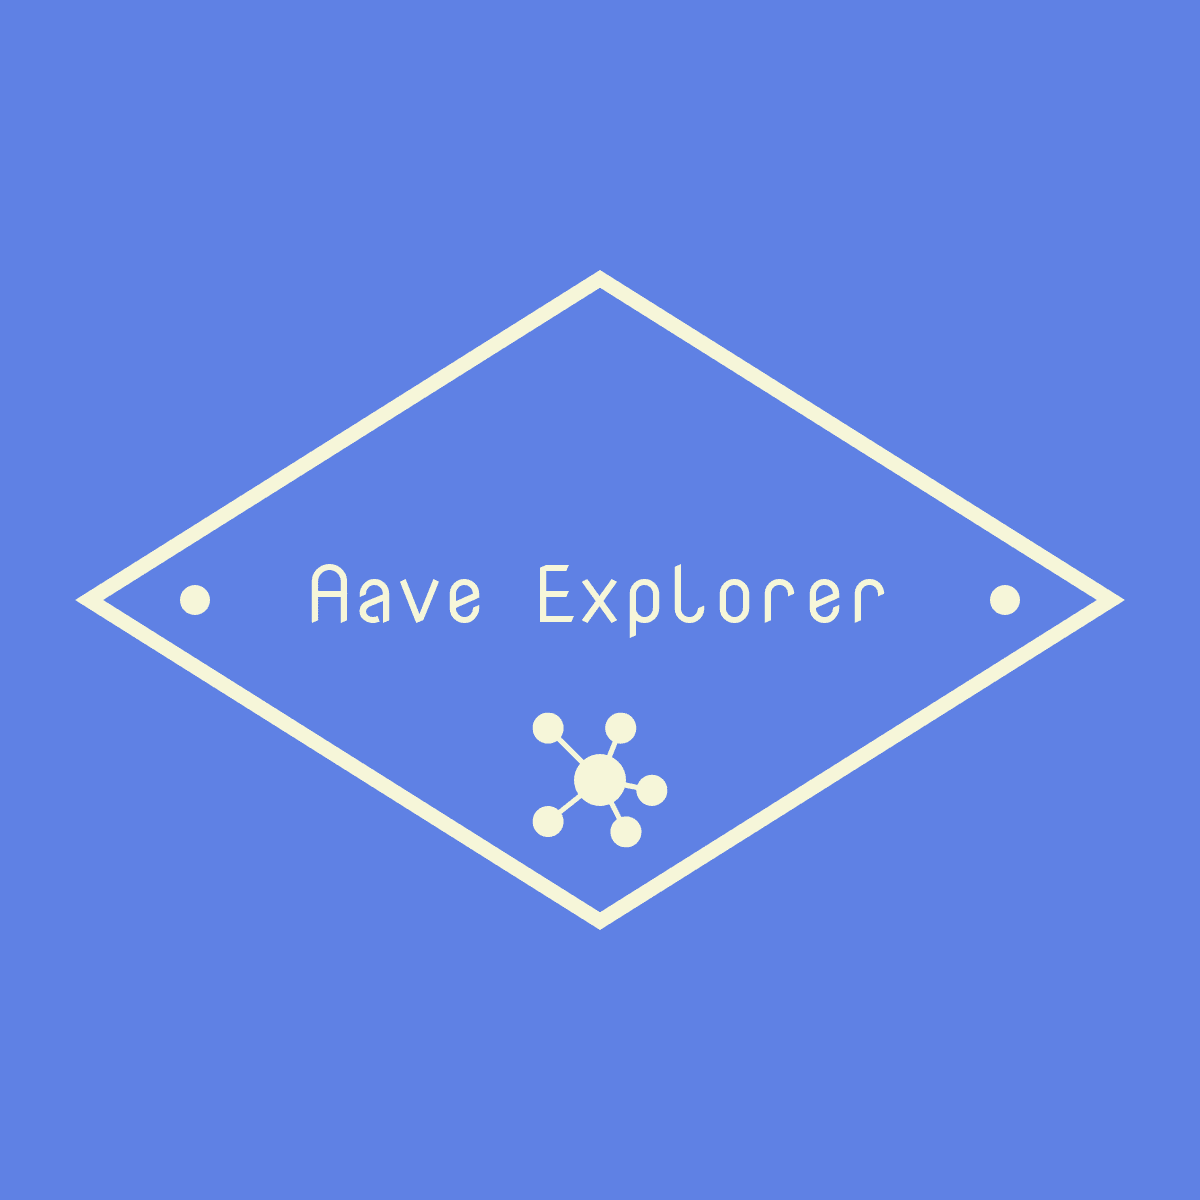 Aave Explorer